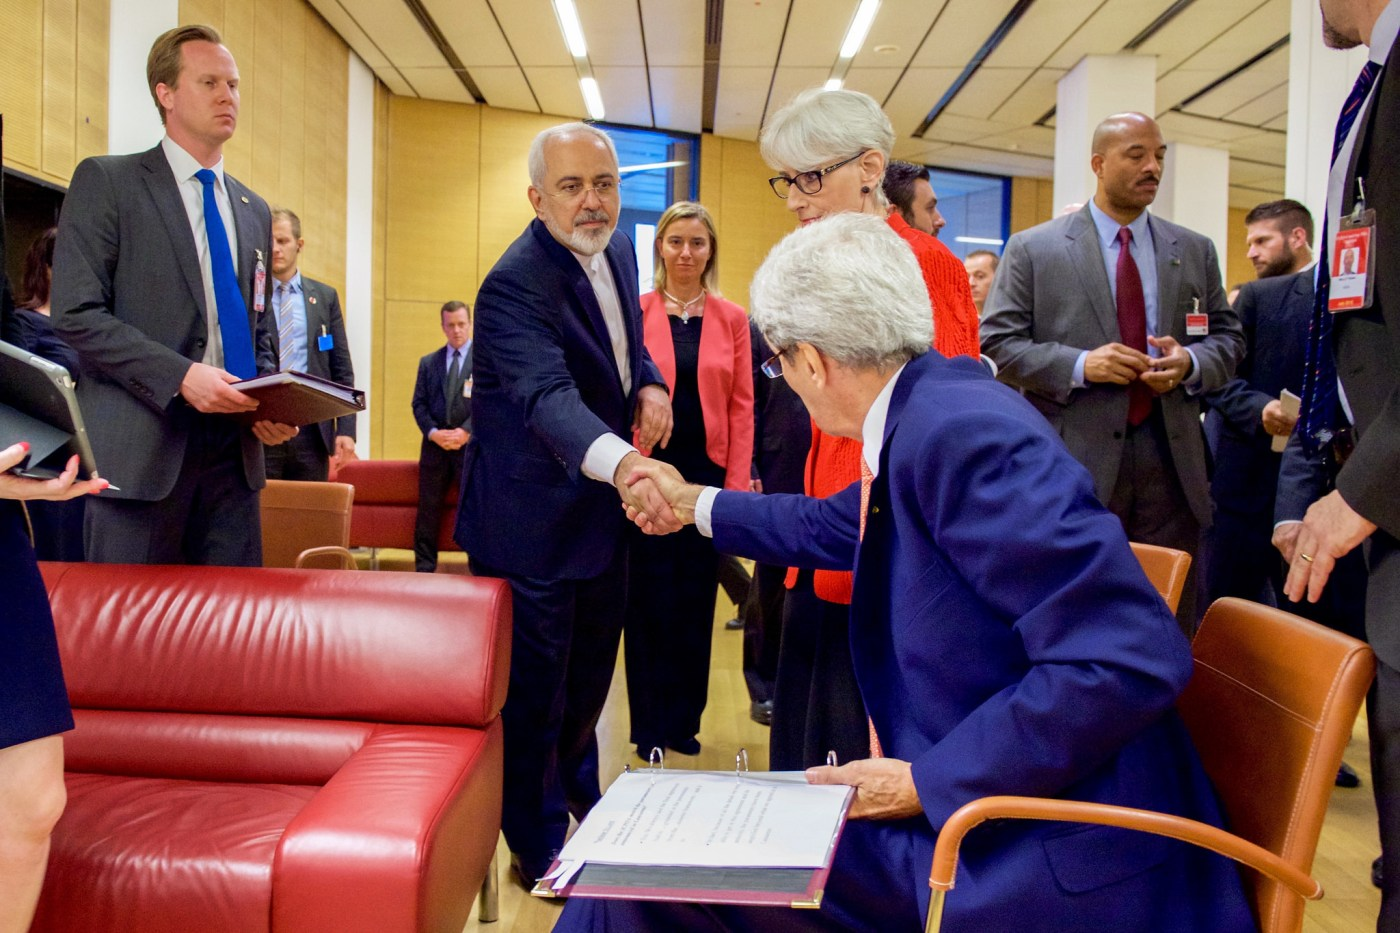 Secretary Kerry shakes hands with and bids goodbye to Iranian Foreign Minister Zarif at the Austria Center in Vienna, July 14, 2015, after Zarif read a declaration of the nuclear agreement in his native Farsi. (State Department)